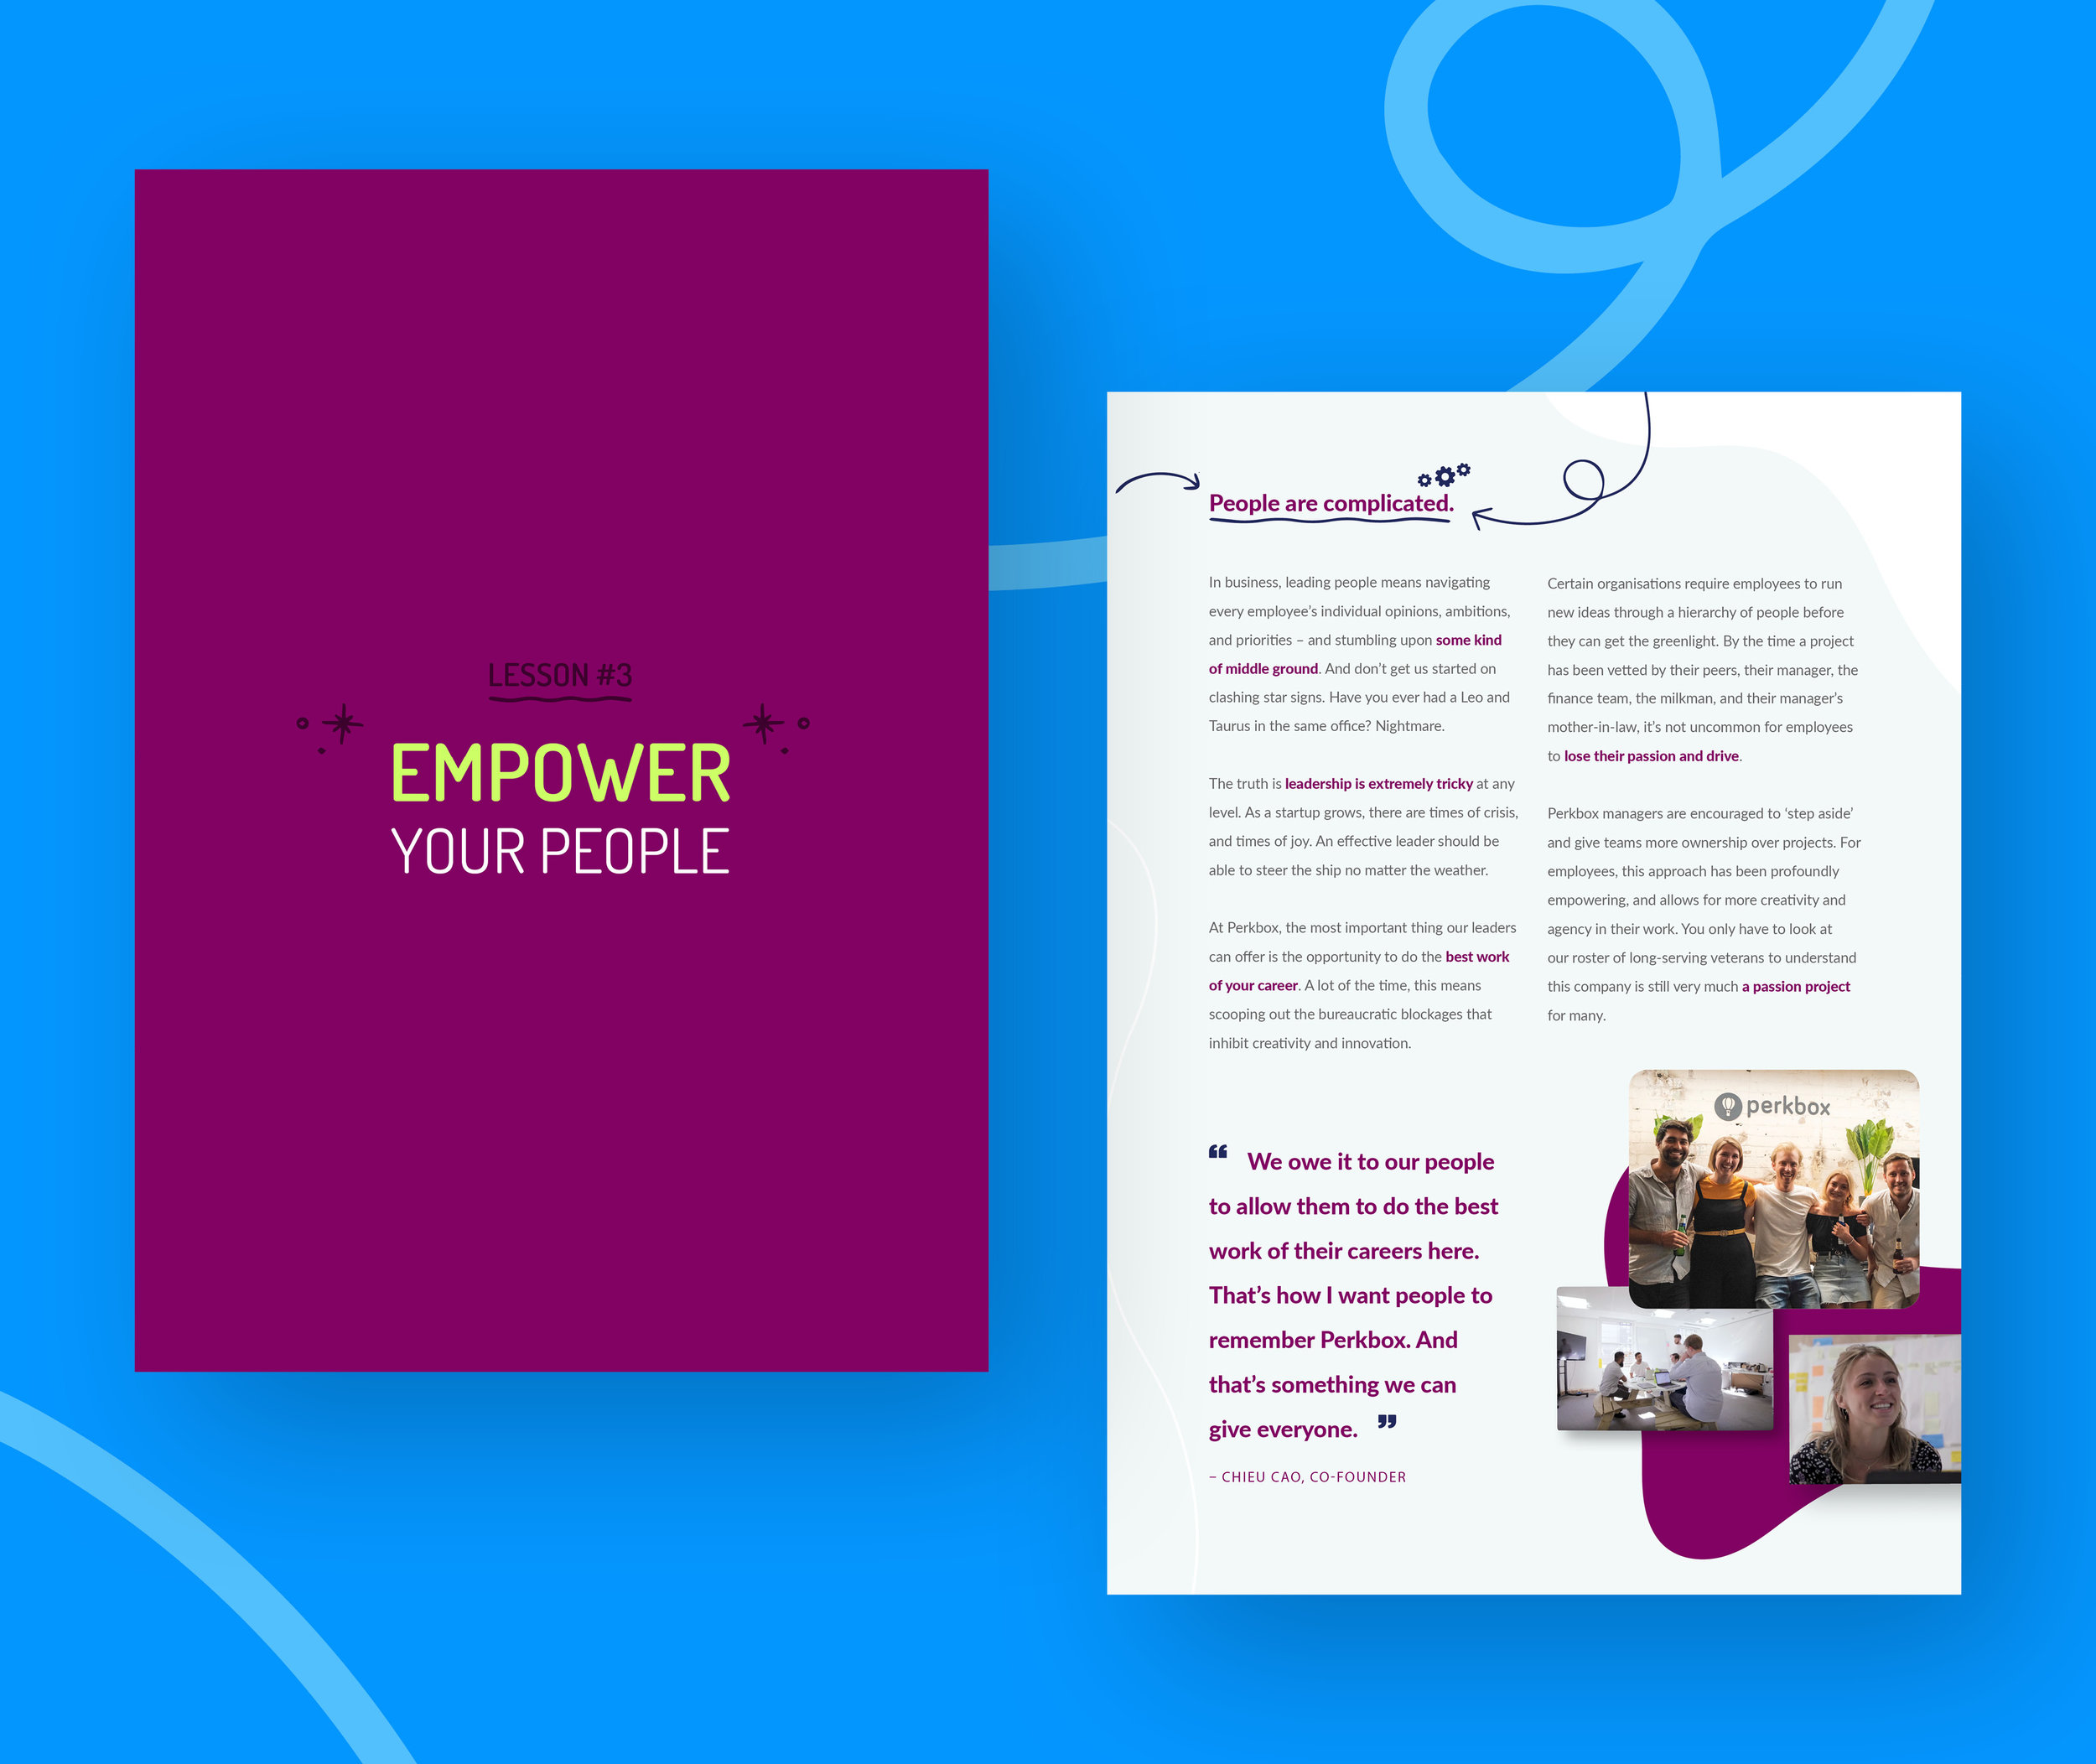 Perkbox playbook - empower your people